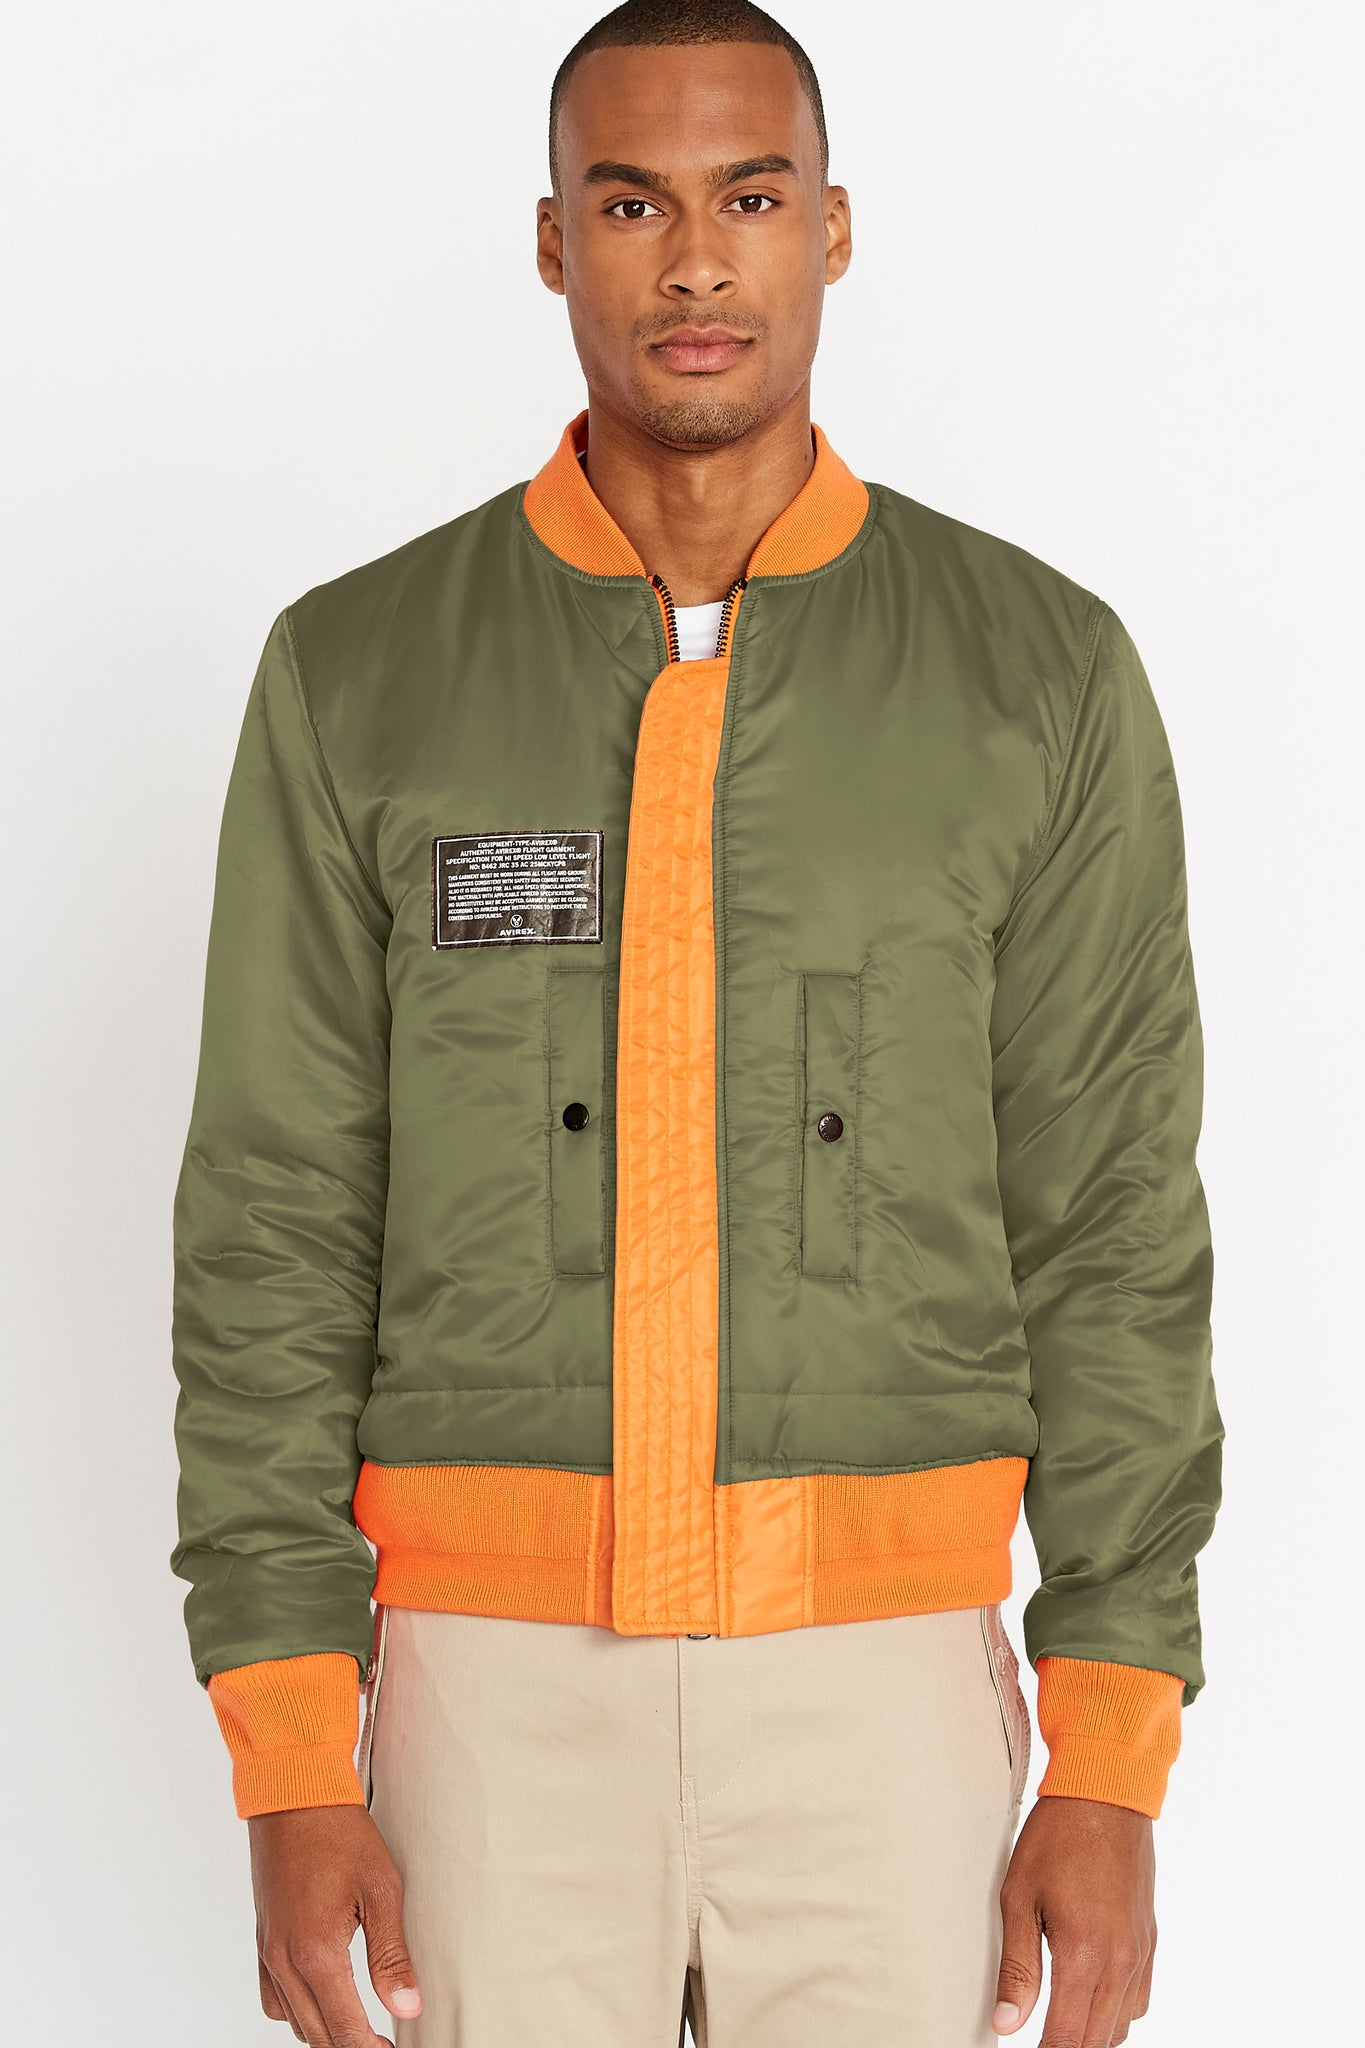 Front view of men wearing a fully zipped reversed olive aviation bomber nylon jacket with patch on right chest and two pockets